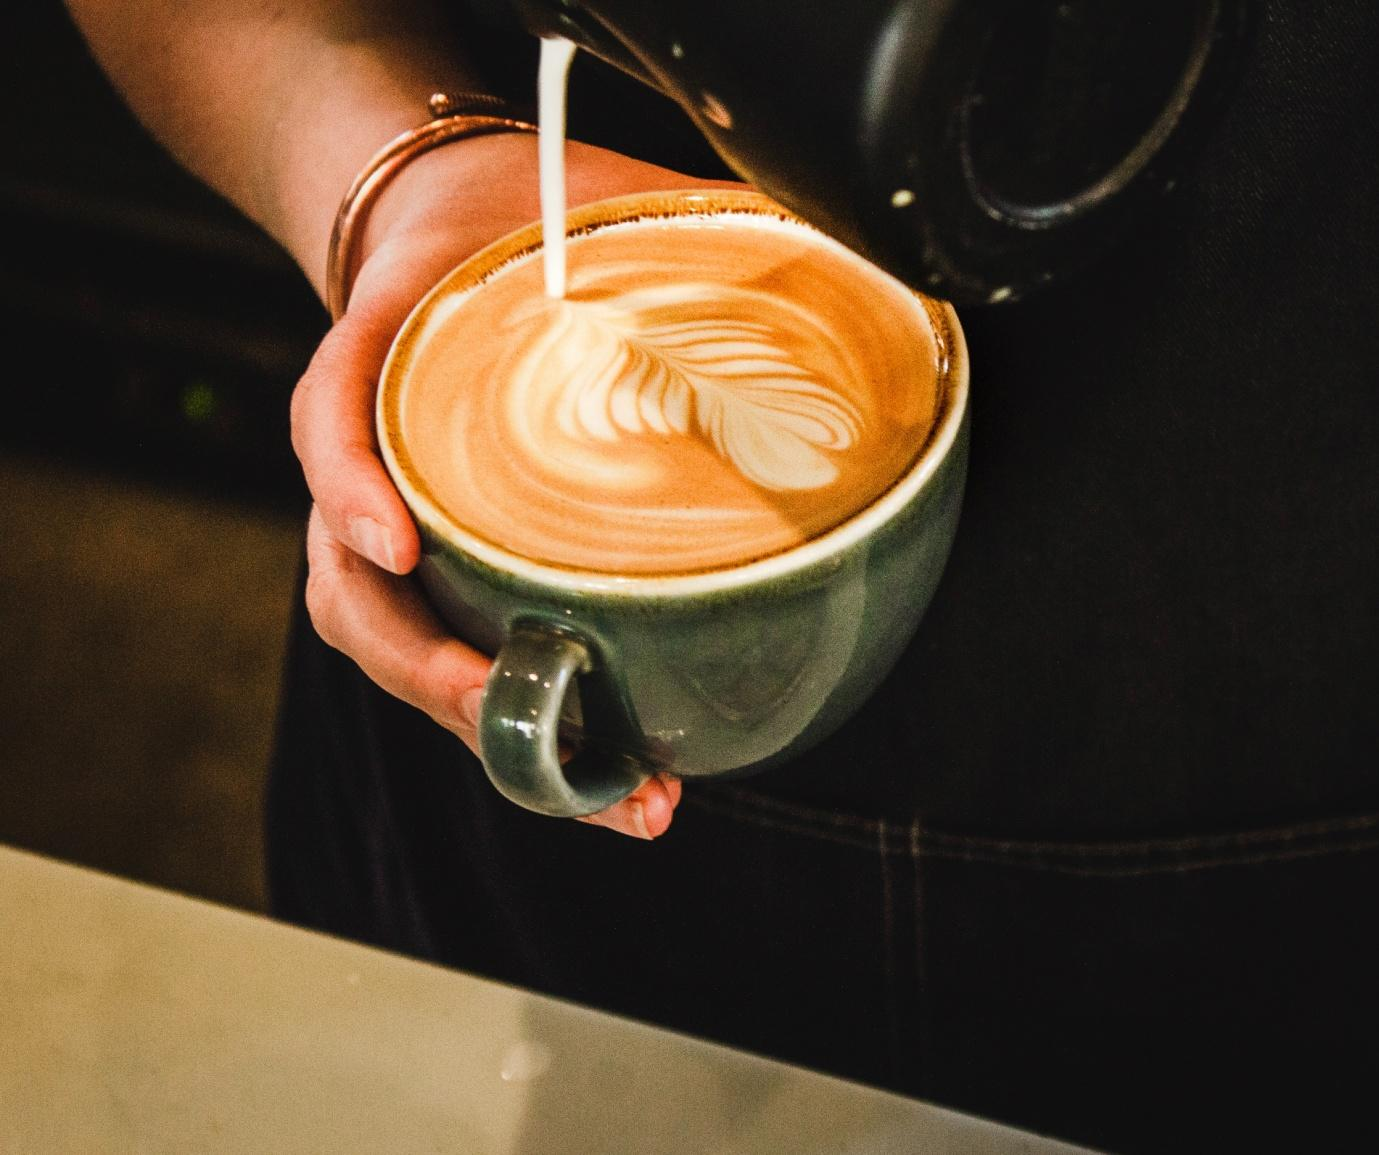 is decaf coffee safe